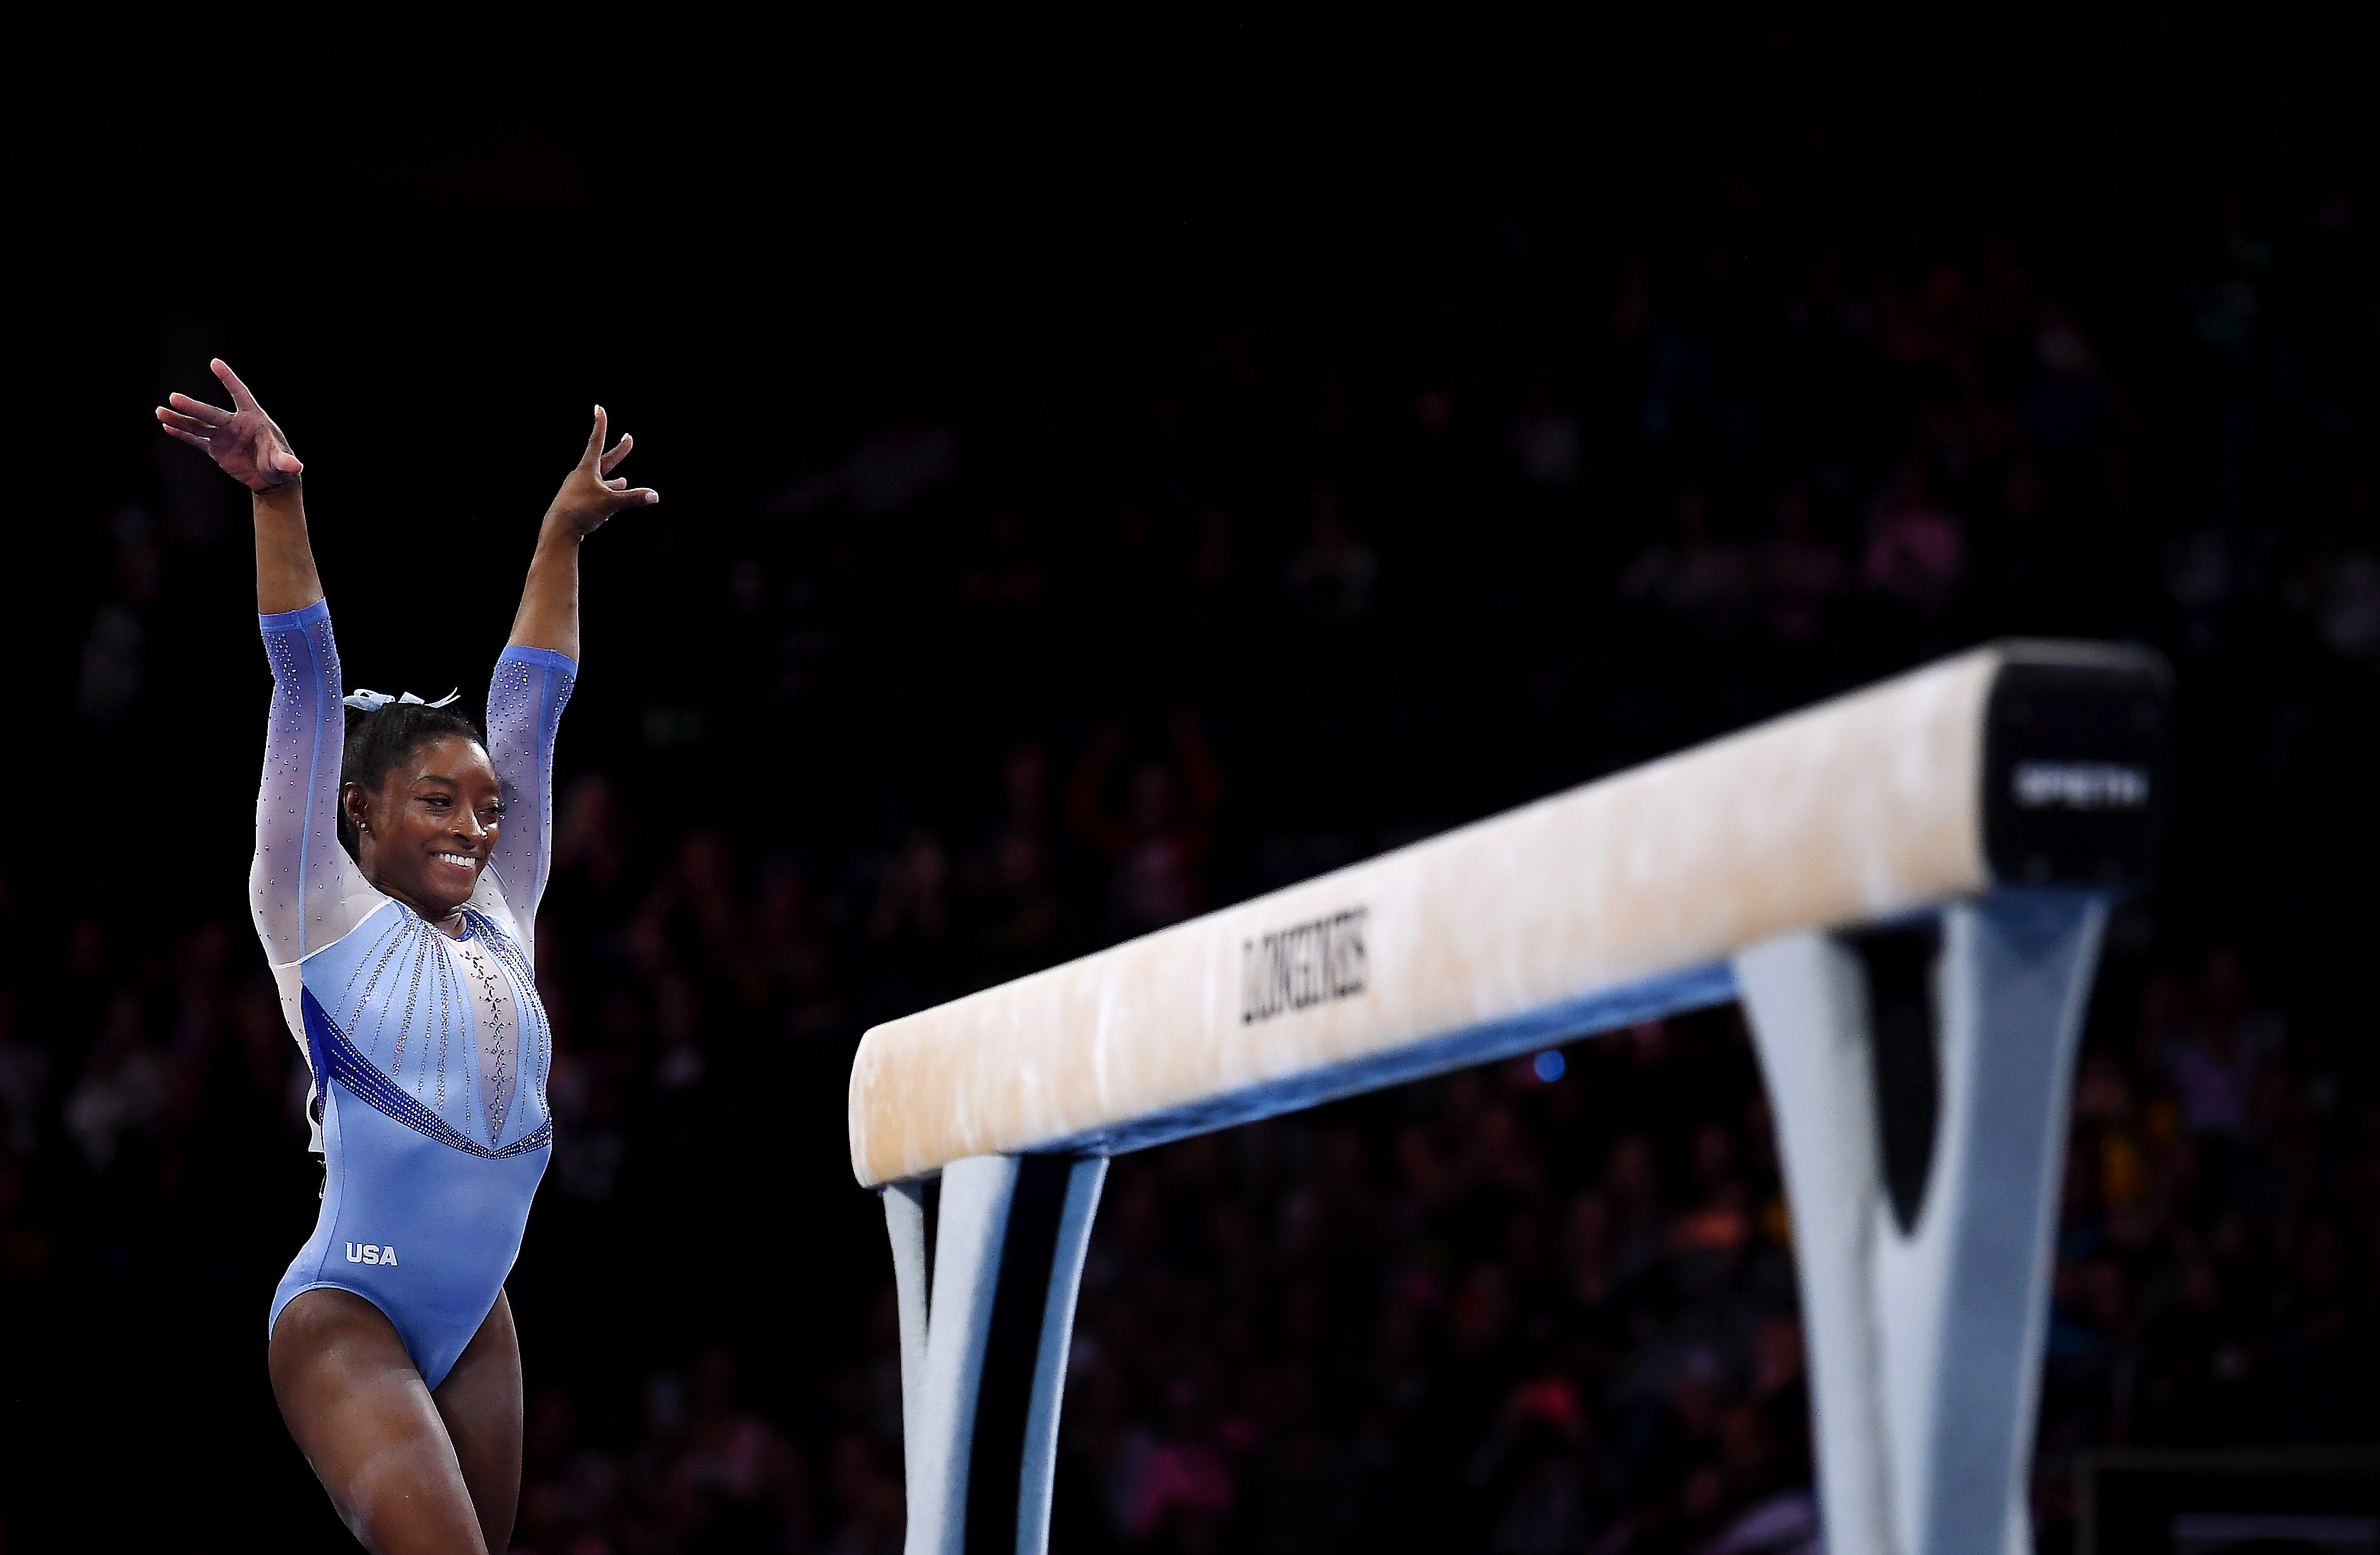 Simone Biles has two new moves name after her after competing in the World Championships in Stuttgart, Germany with Team USA.